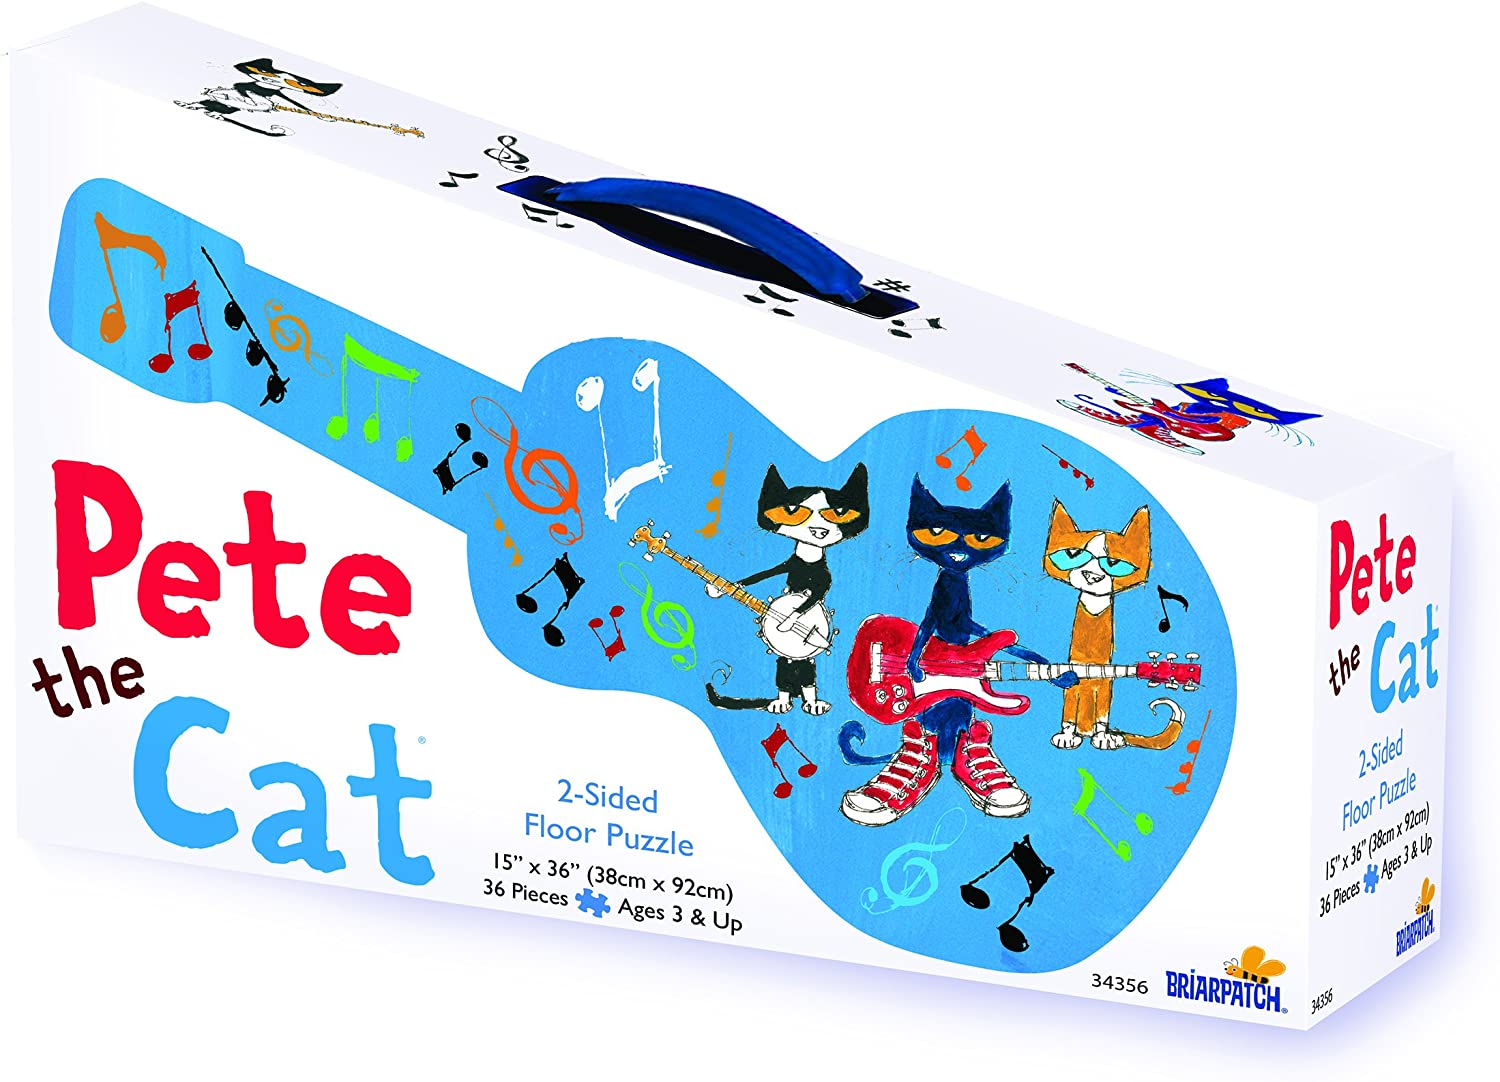 Pete the Cat 2 Sided Floor Puzz